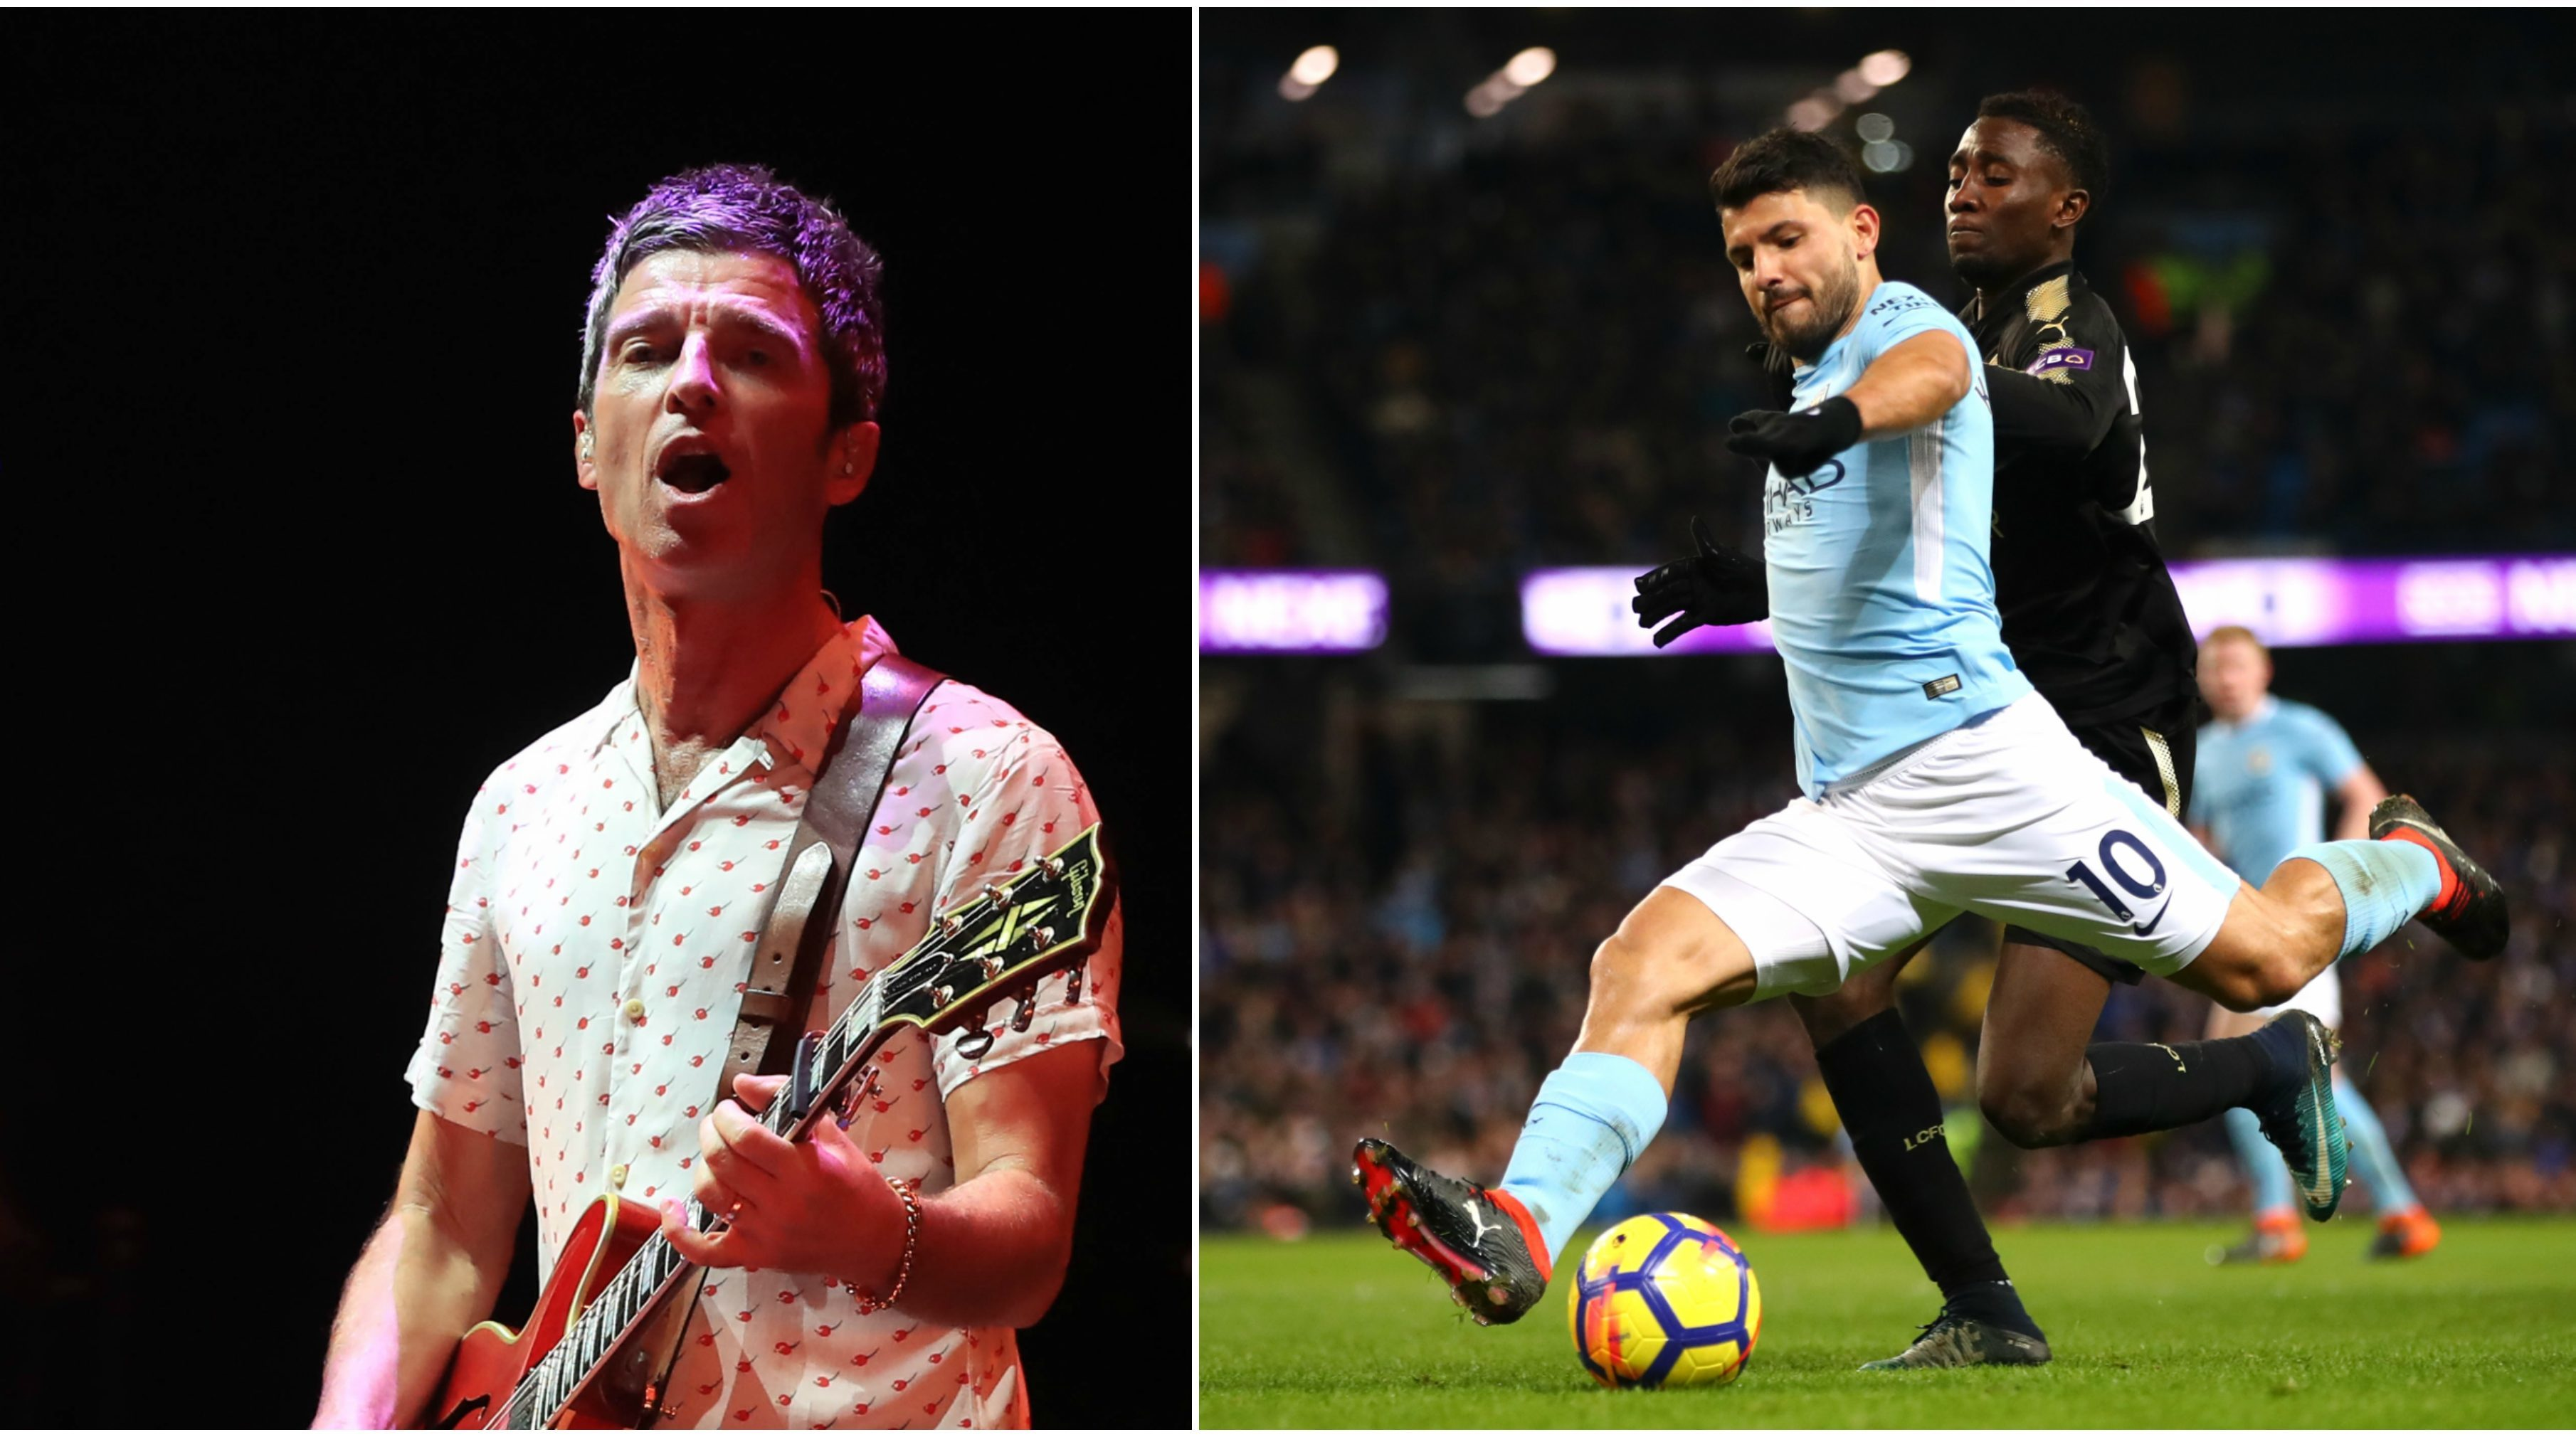 Noel Gallagher, left, and Sergio Aguero of Man City, right.